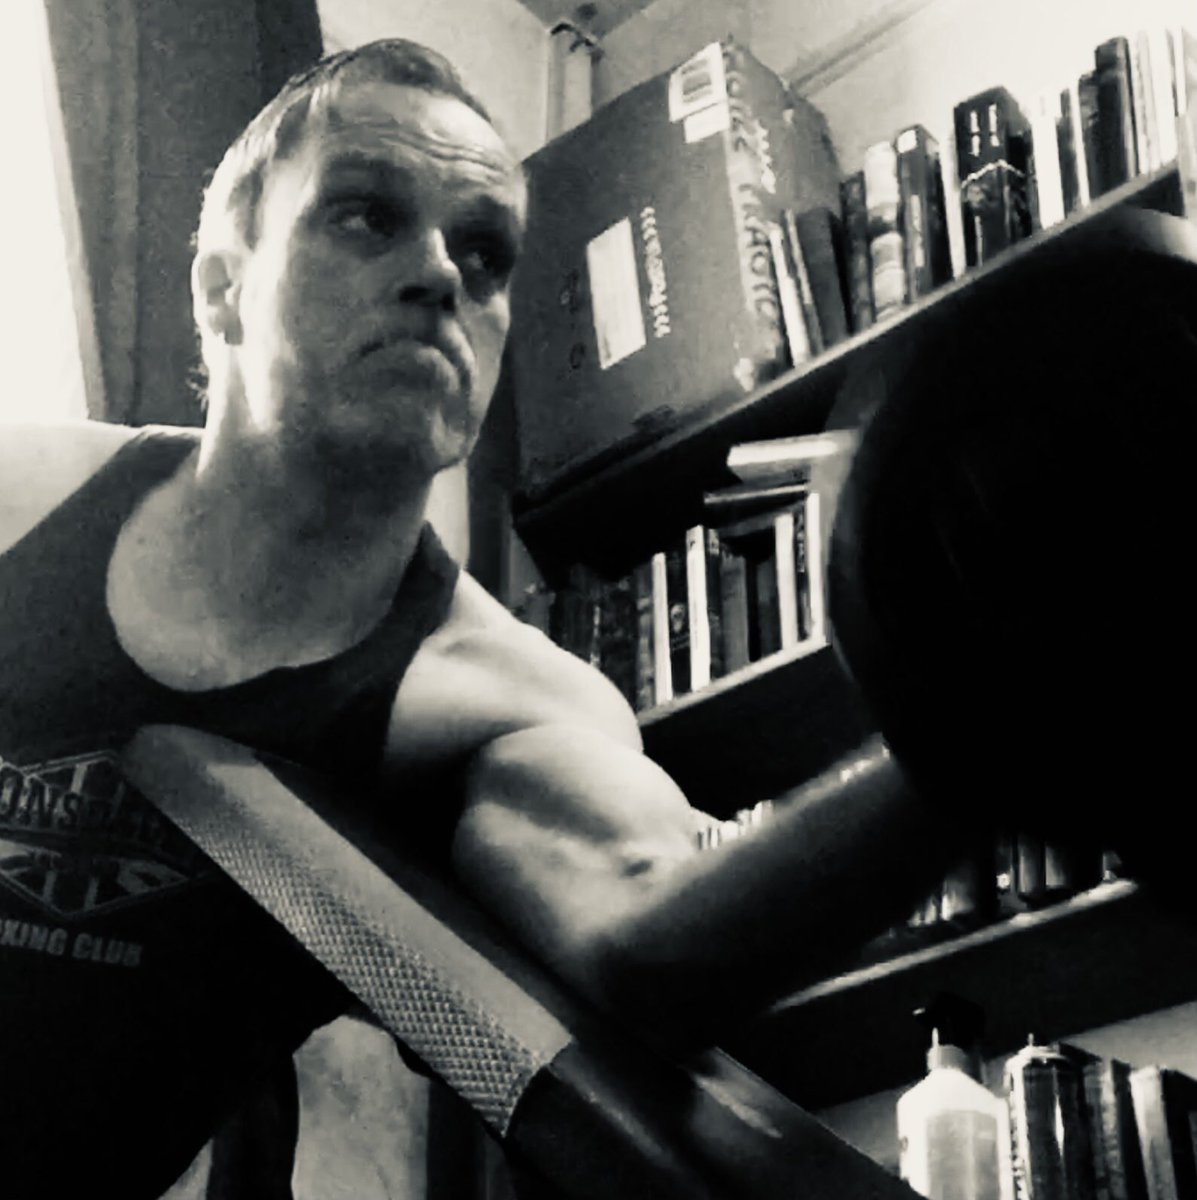 SATURDAY IS ARM DAY , #fitness #gym #workout #fit #fitnessmotivation #motivation #bodybuilding #training #health #fitfam #lifestyle #sport #crossfit #healthy #gymklife #love #healthylifestyle #instagood #muscle #exercise #weightloss #gymmotivation #fitspo #instafit #muscle https://t.co/tDEIuSMTAu